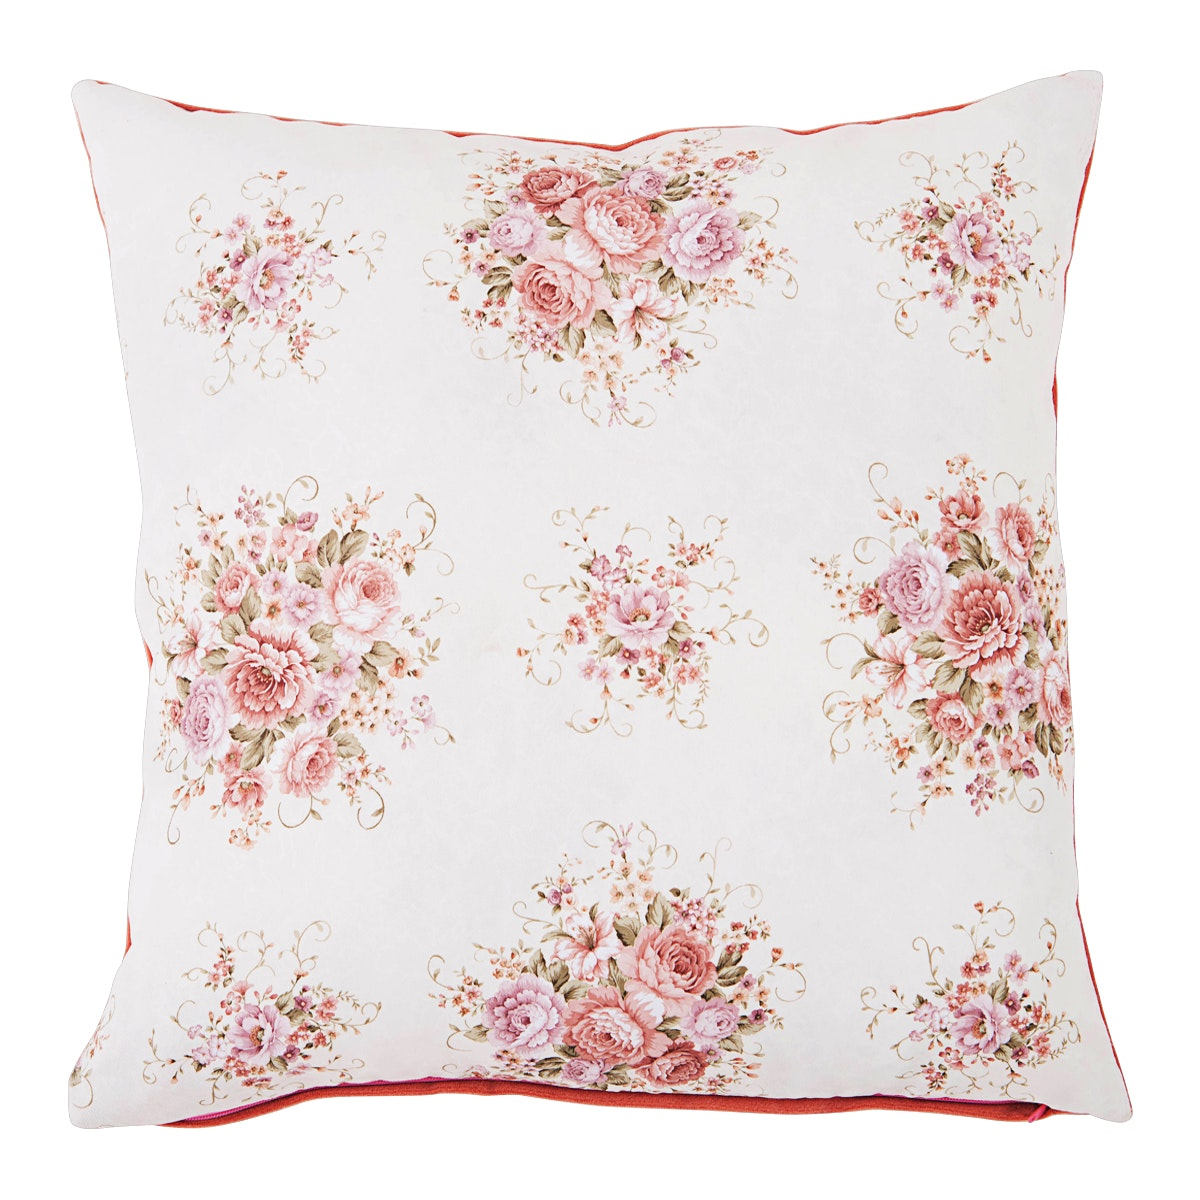 Maiika I Flower 3 Cover Cushion 45x45cm